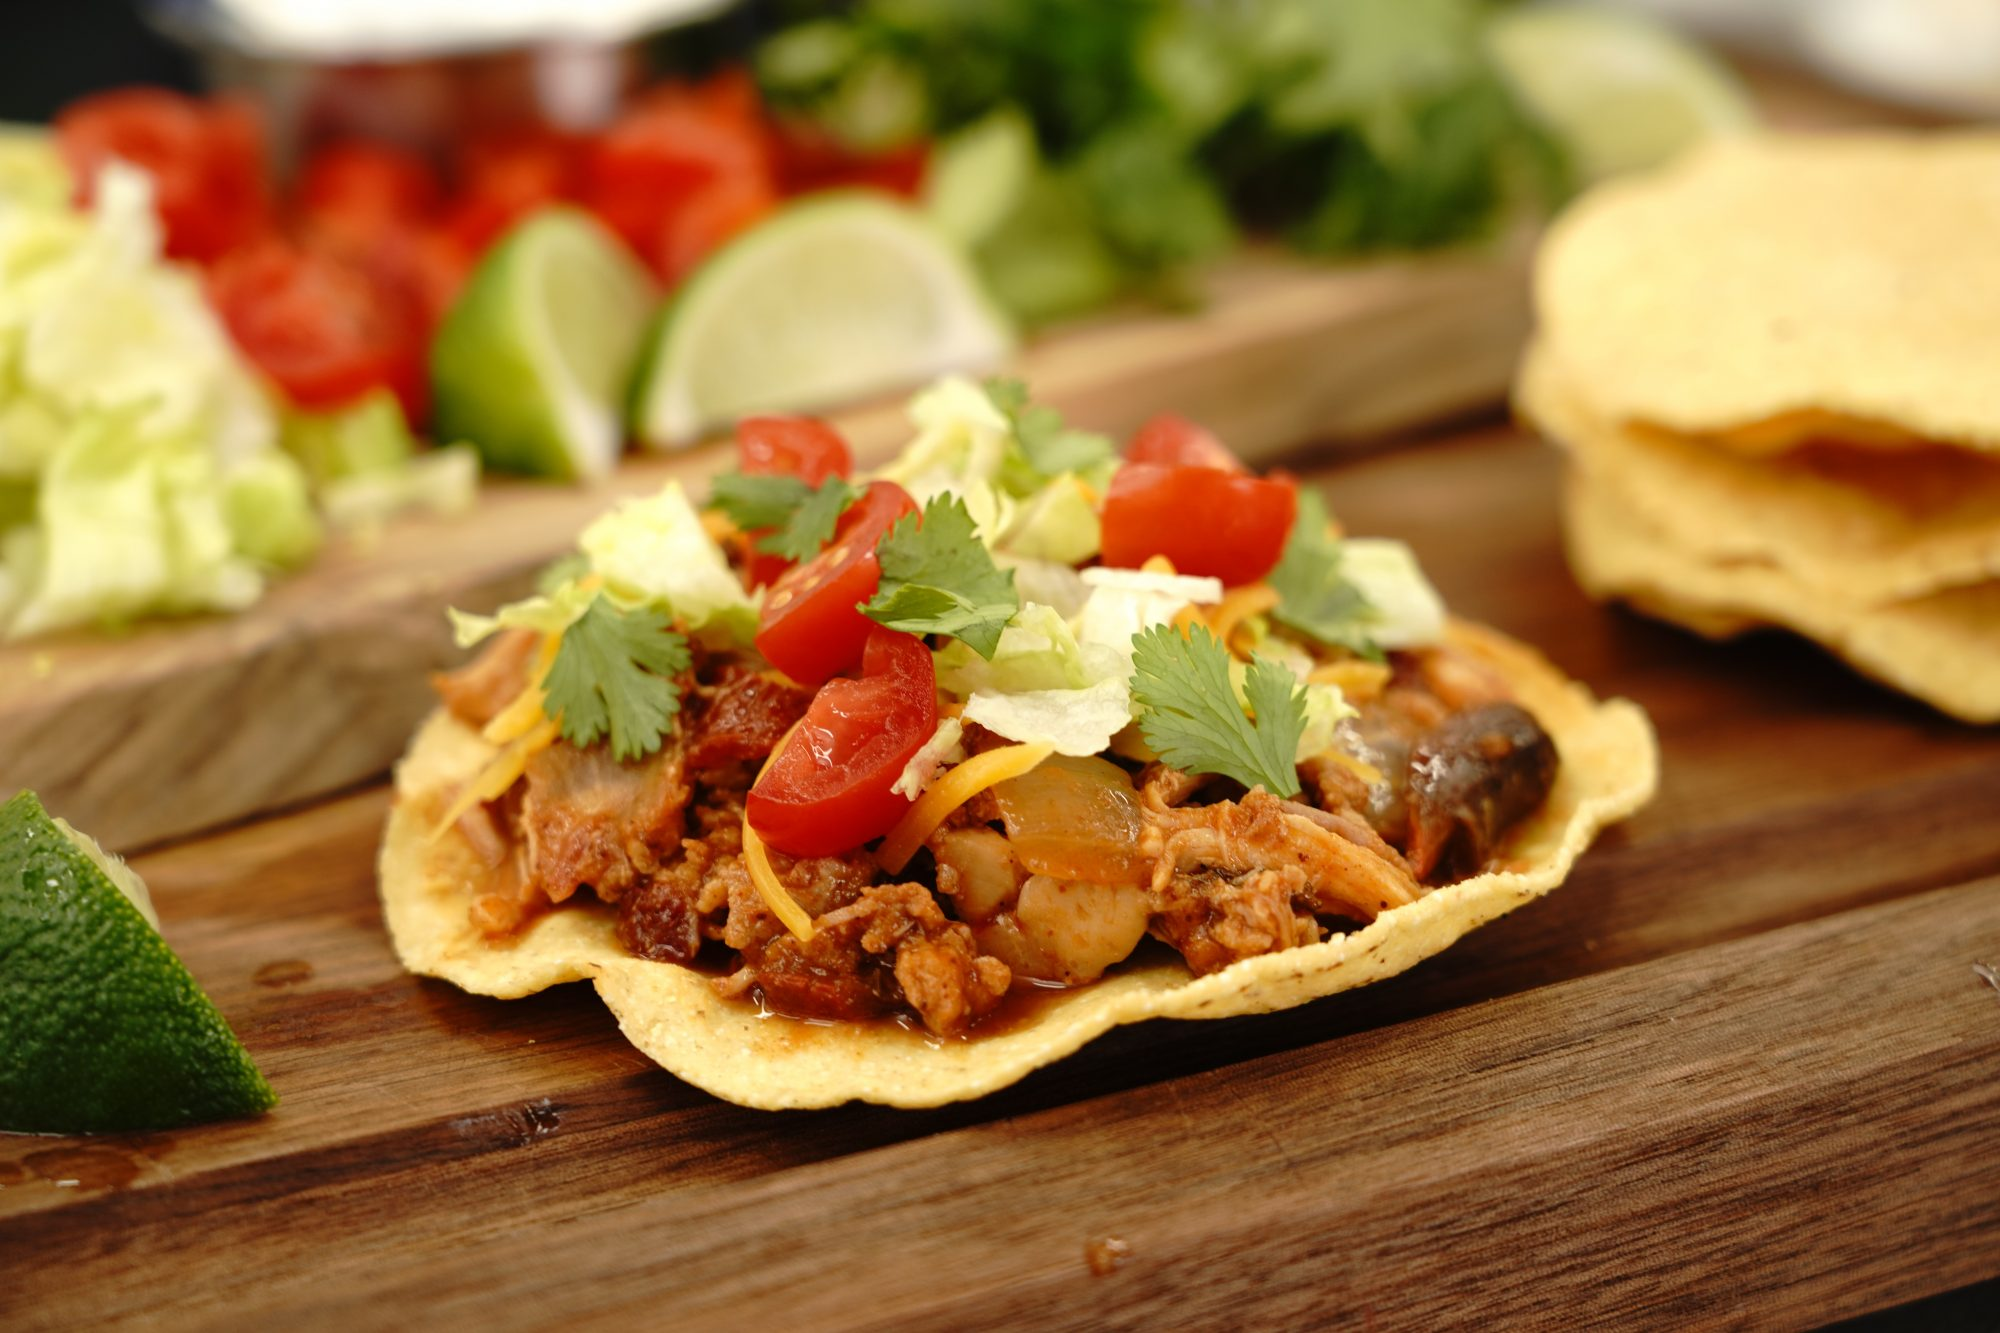 slow cooker chicken tinga on tostada shell topped with lettuce, tomatoes, and cilantro